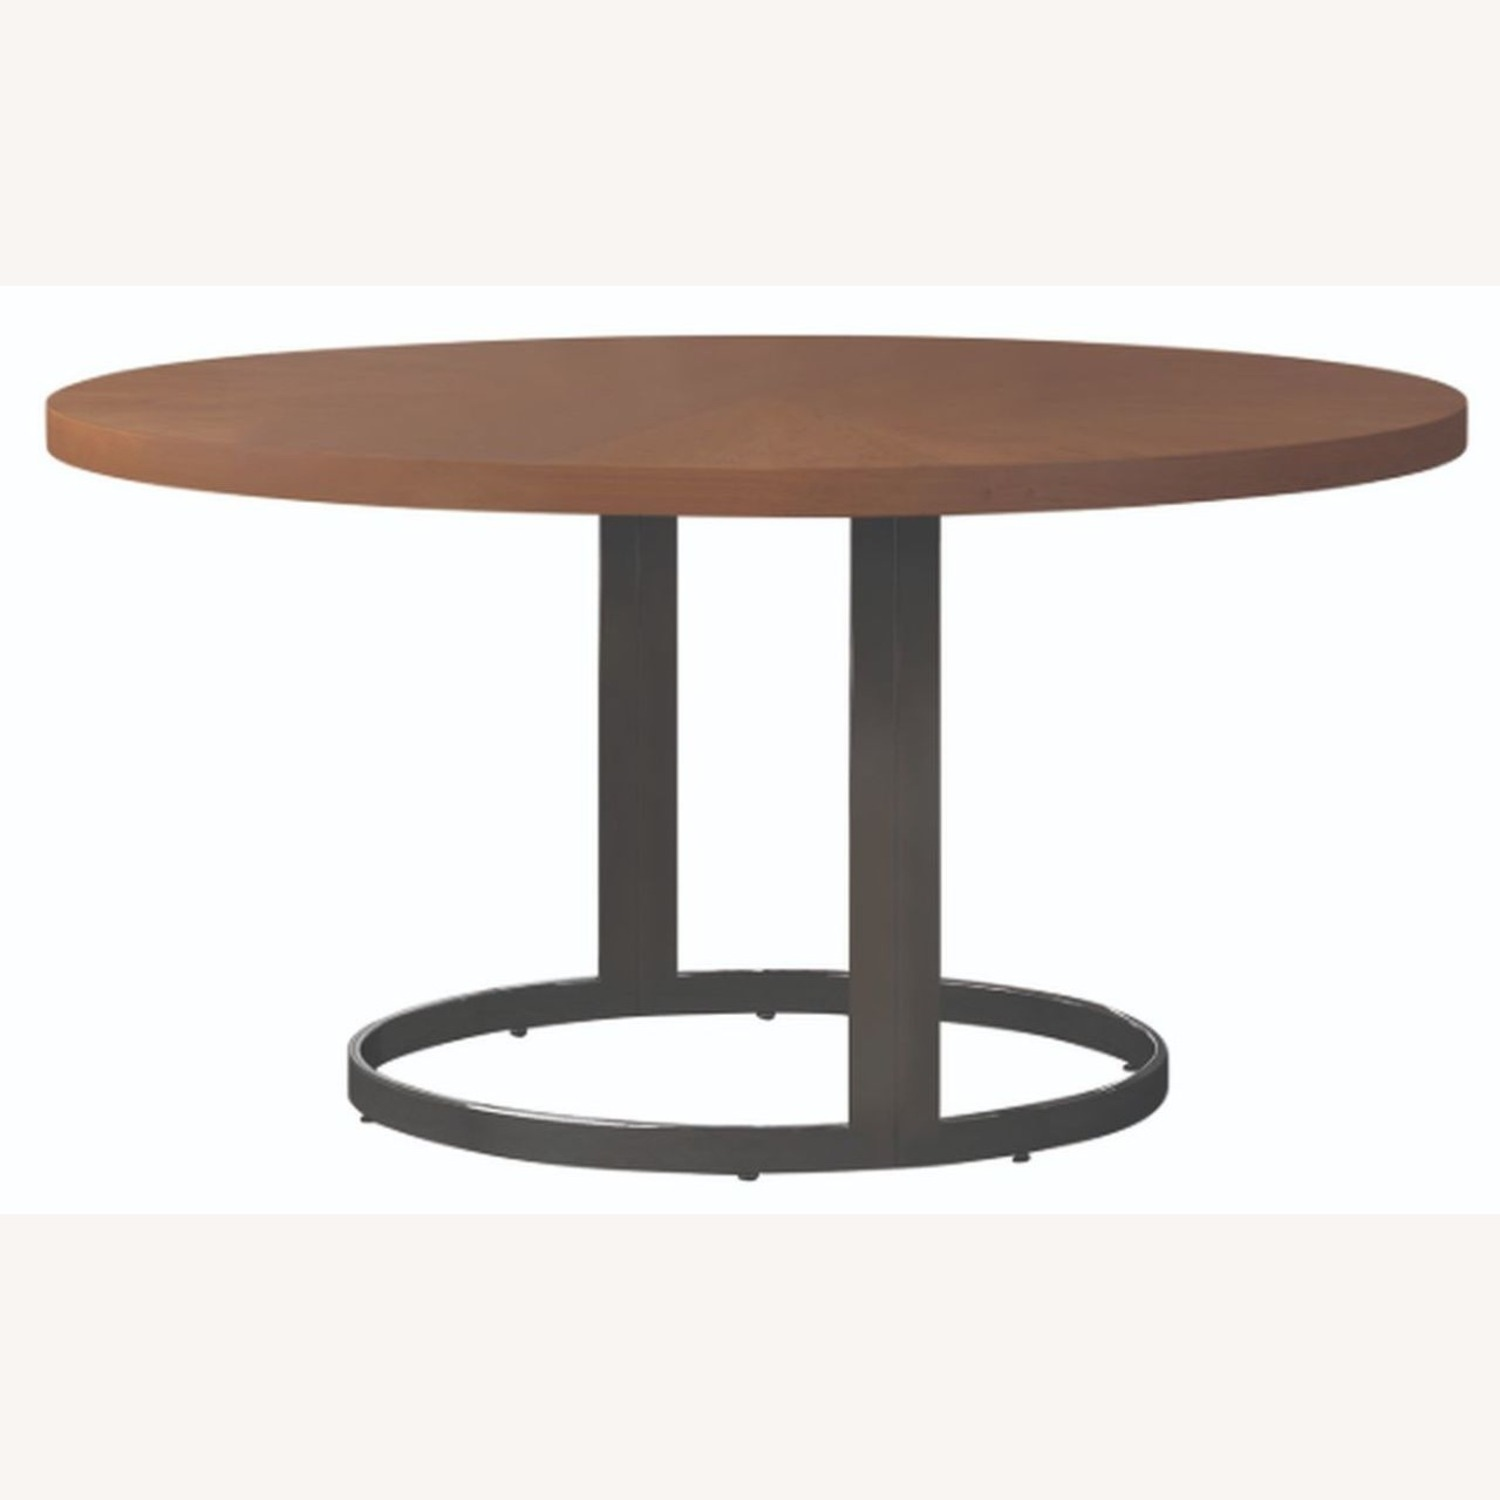 Modern Dining Table In Natural Cherry Finish - image-0